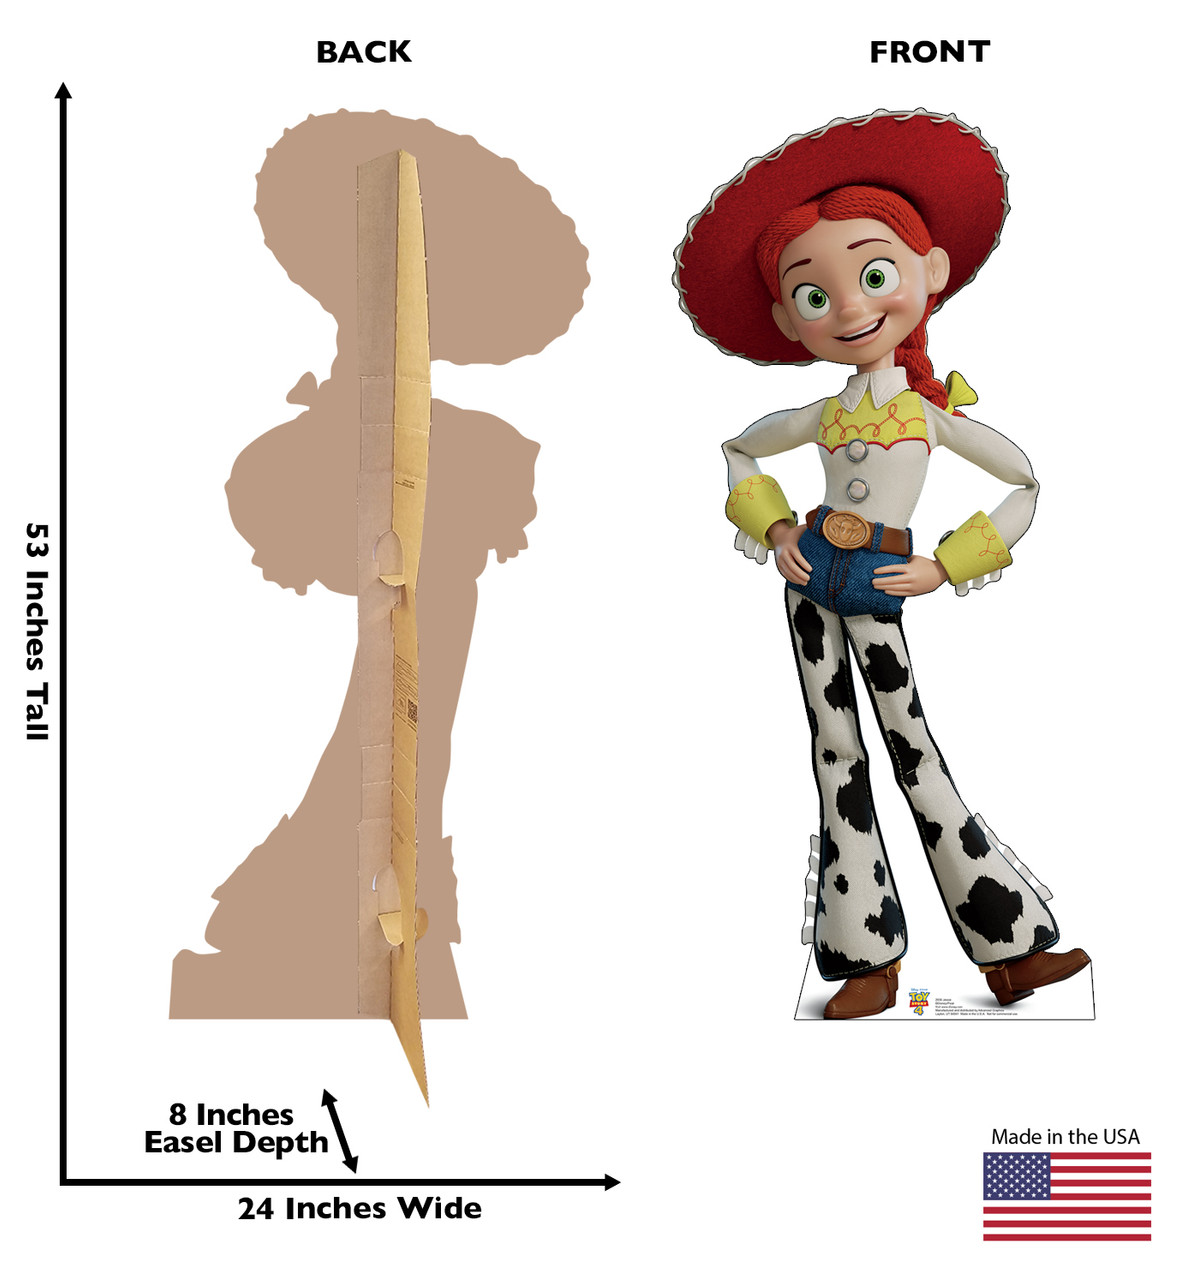 Jessie - Toy Story 4 Cardboard Cutout Front and Back View